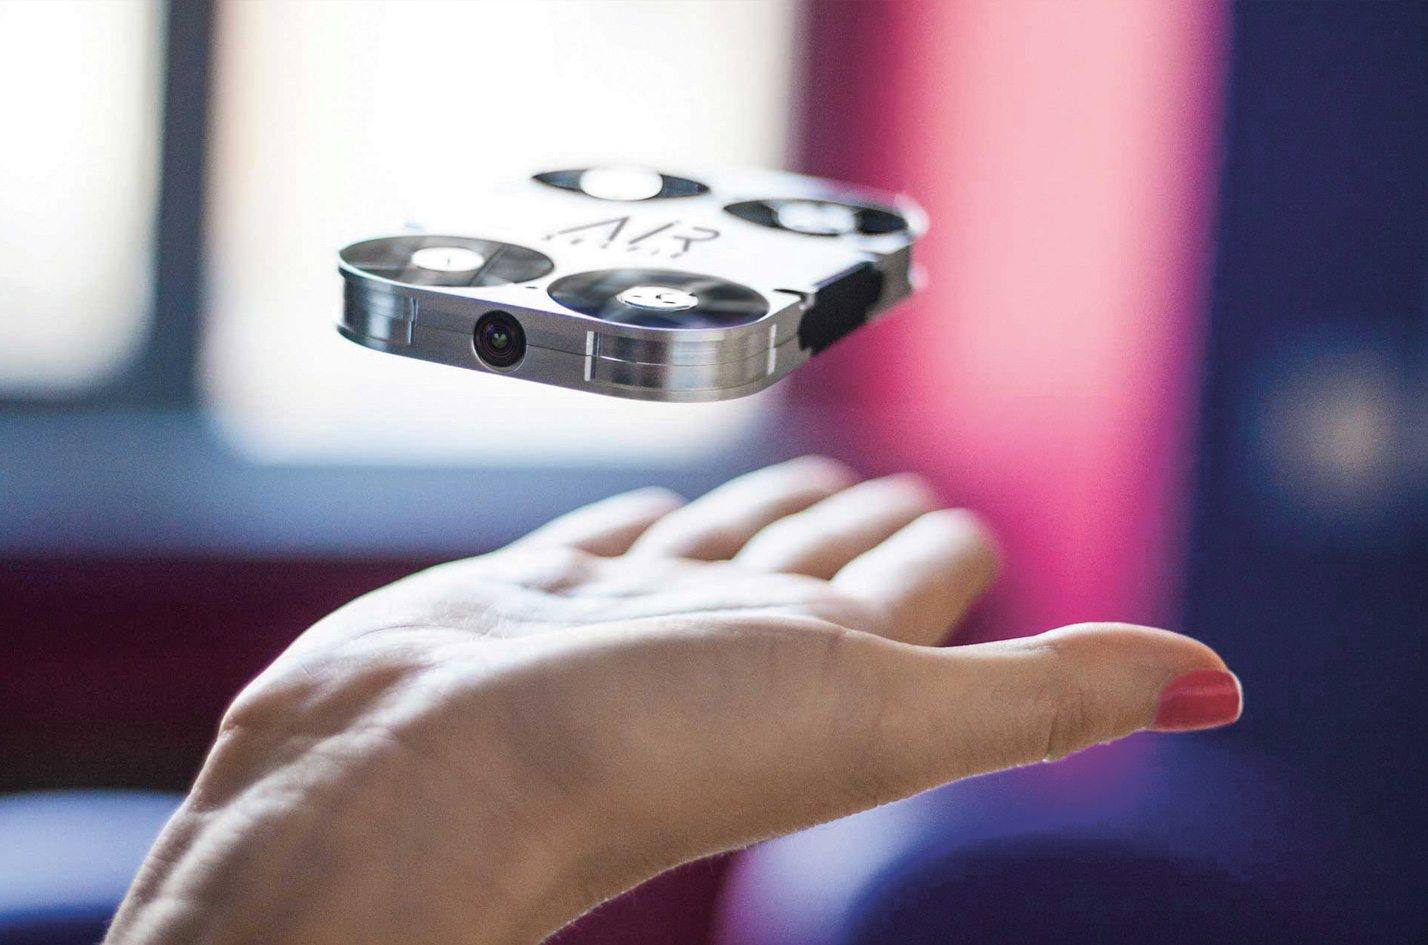 Worlds smallest drone with camera